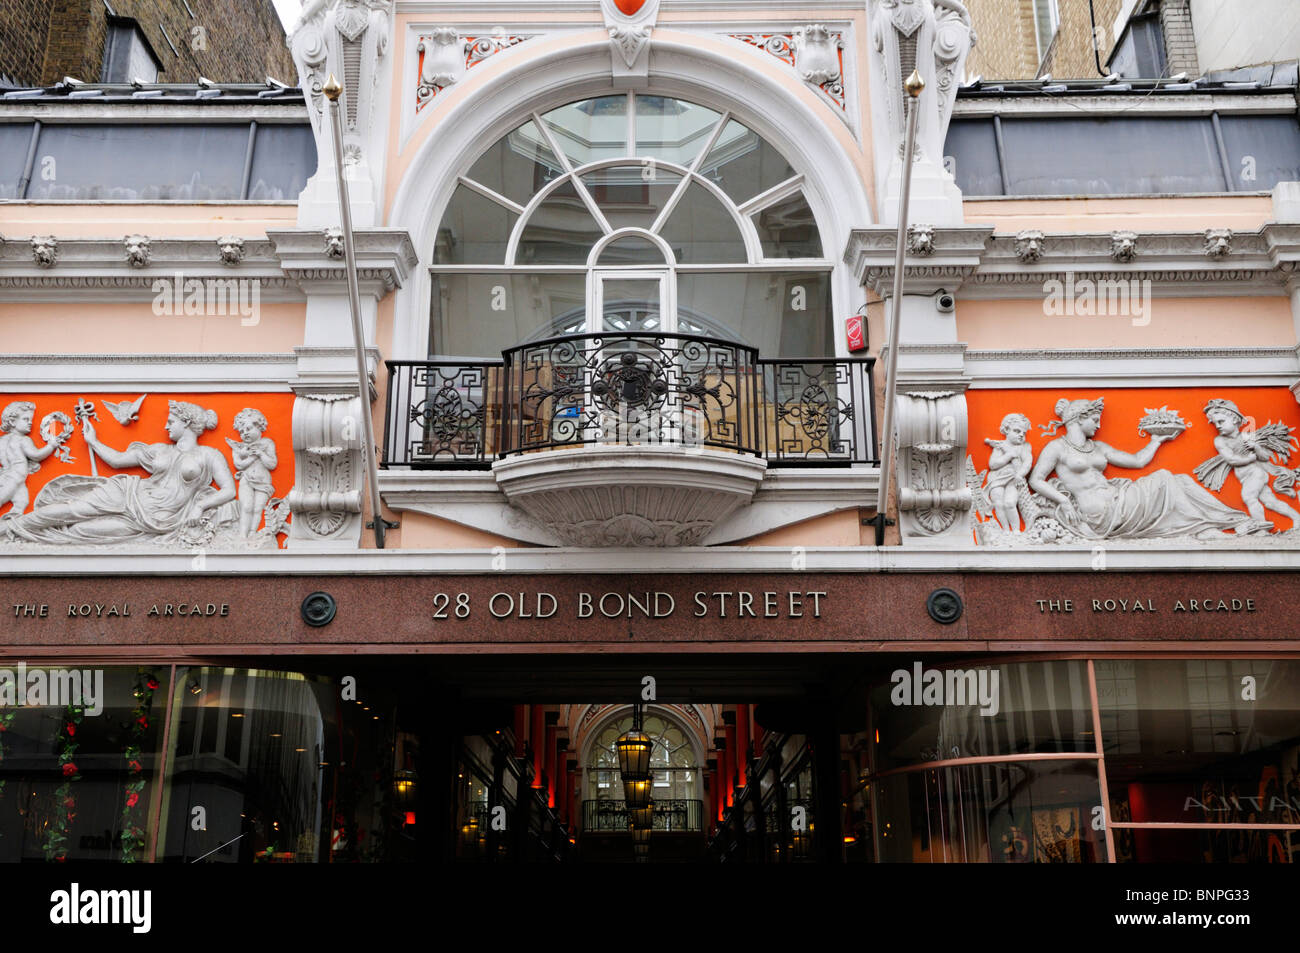 The Royal Arcade, Old Bond Street, Mayfair, London, England, UK - Stock Image